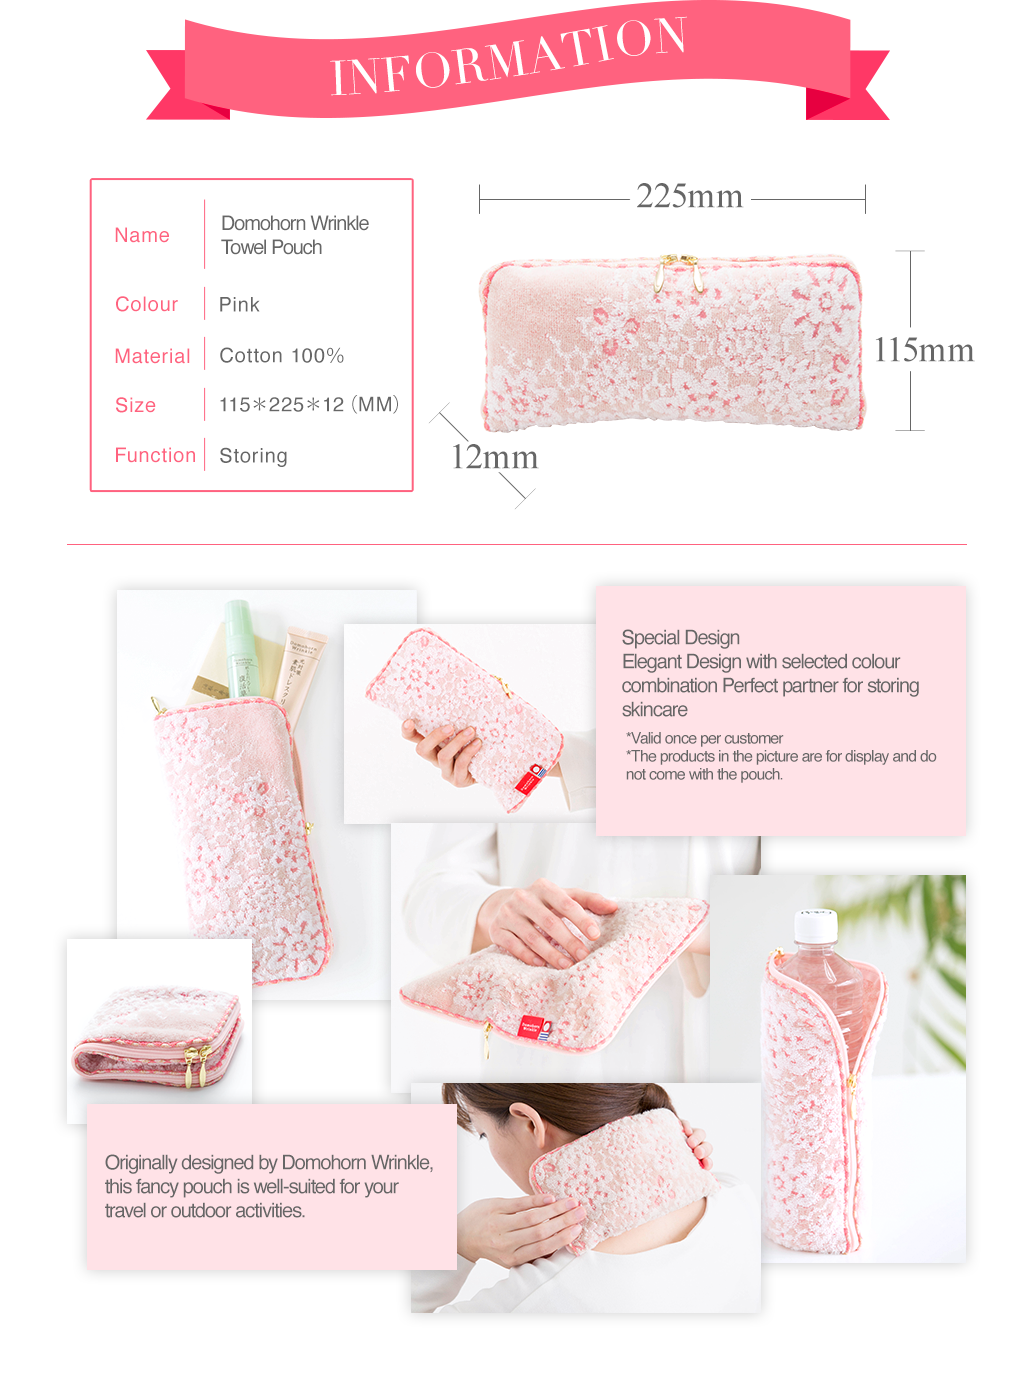 INFORMATION Name Domohorn WrinkleTowel Pouch Colour Pink Material Cotton 100% Size 115*225*12(MM) Function Storing Special Design Elegant Design with selected colour combination Perfect partner for storing skincare Handy zipped up design for skincare storage *Valid once per customer *The products in the picture are for display and do not come with the pouch. Originally designed by Domohorn Wrinkle, this fancy pouch is well-suited for your travel or outdoor activities.